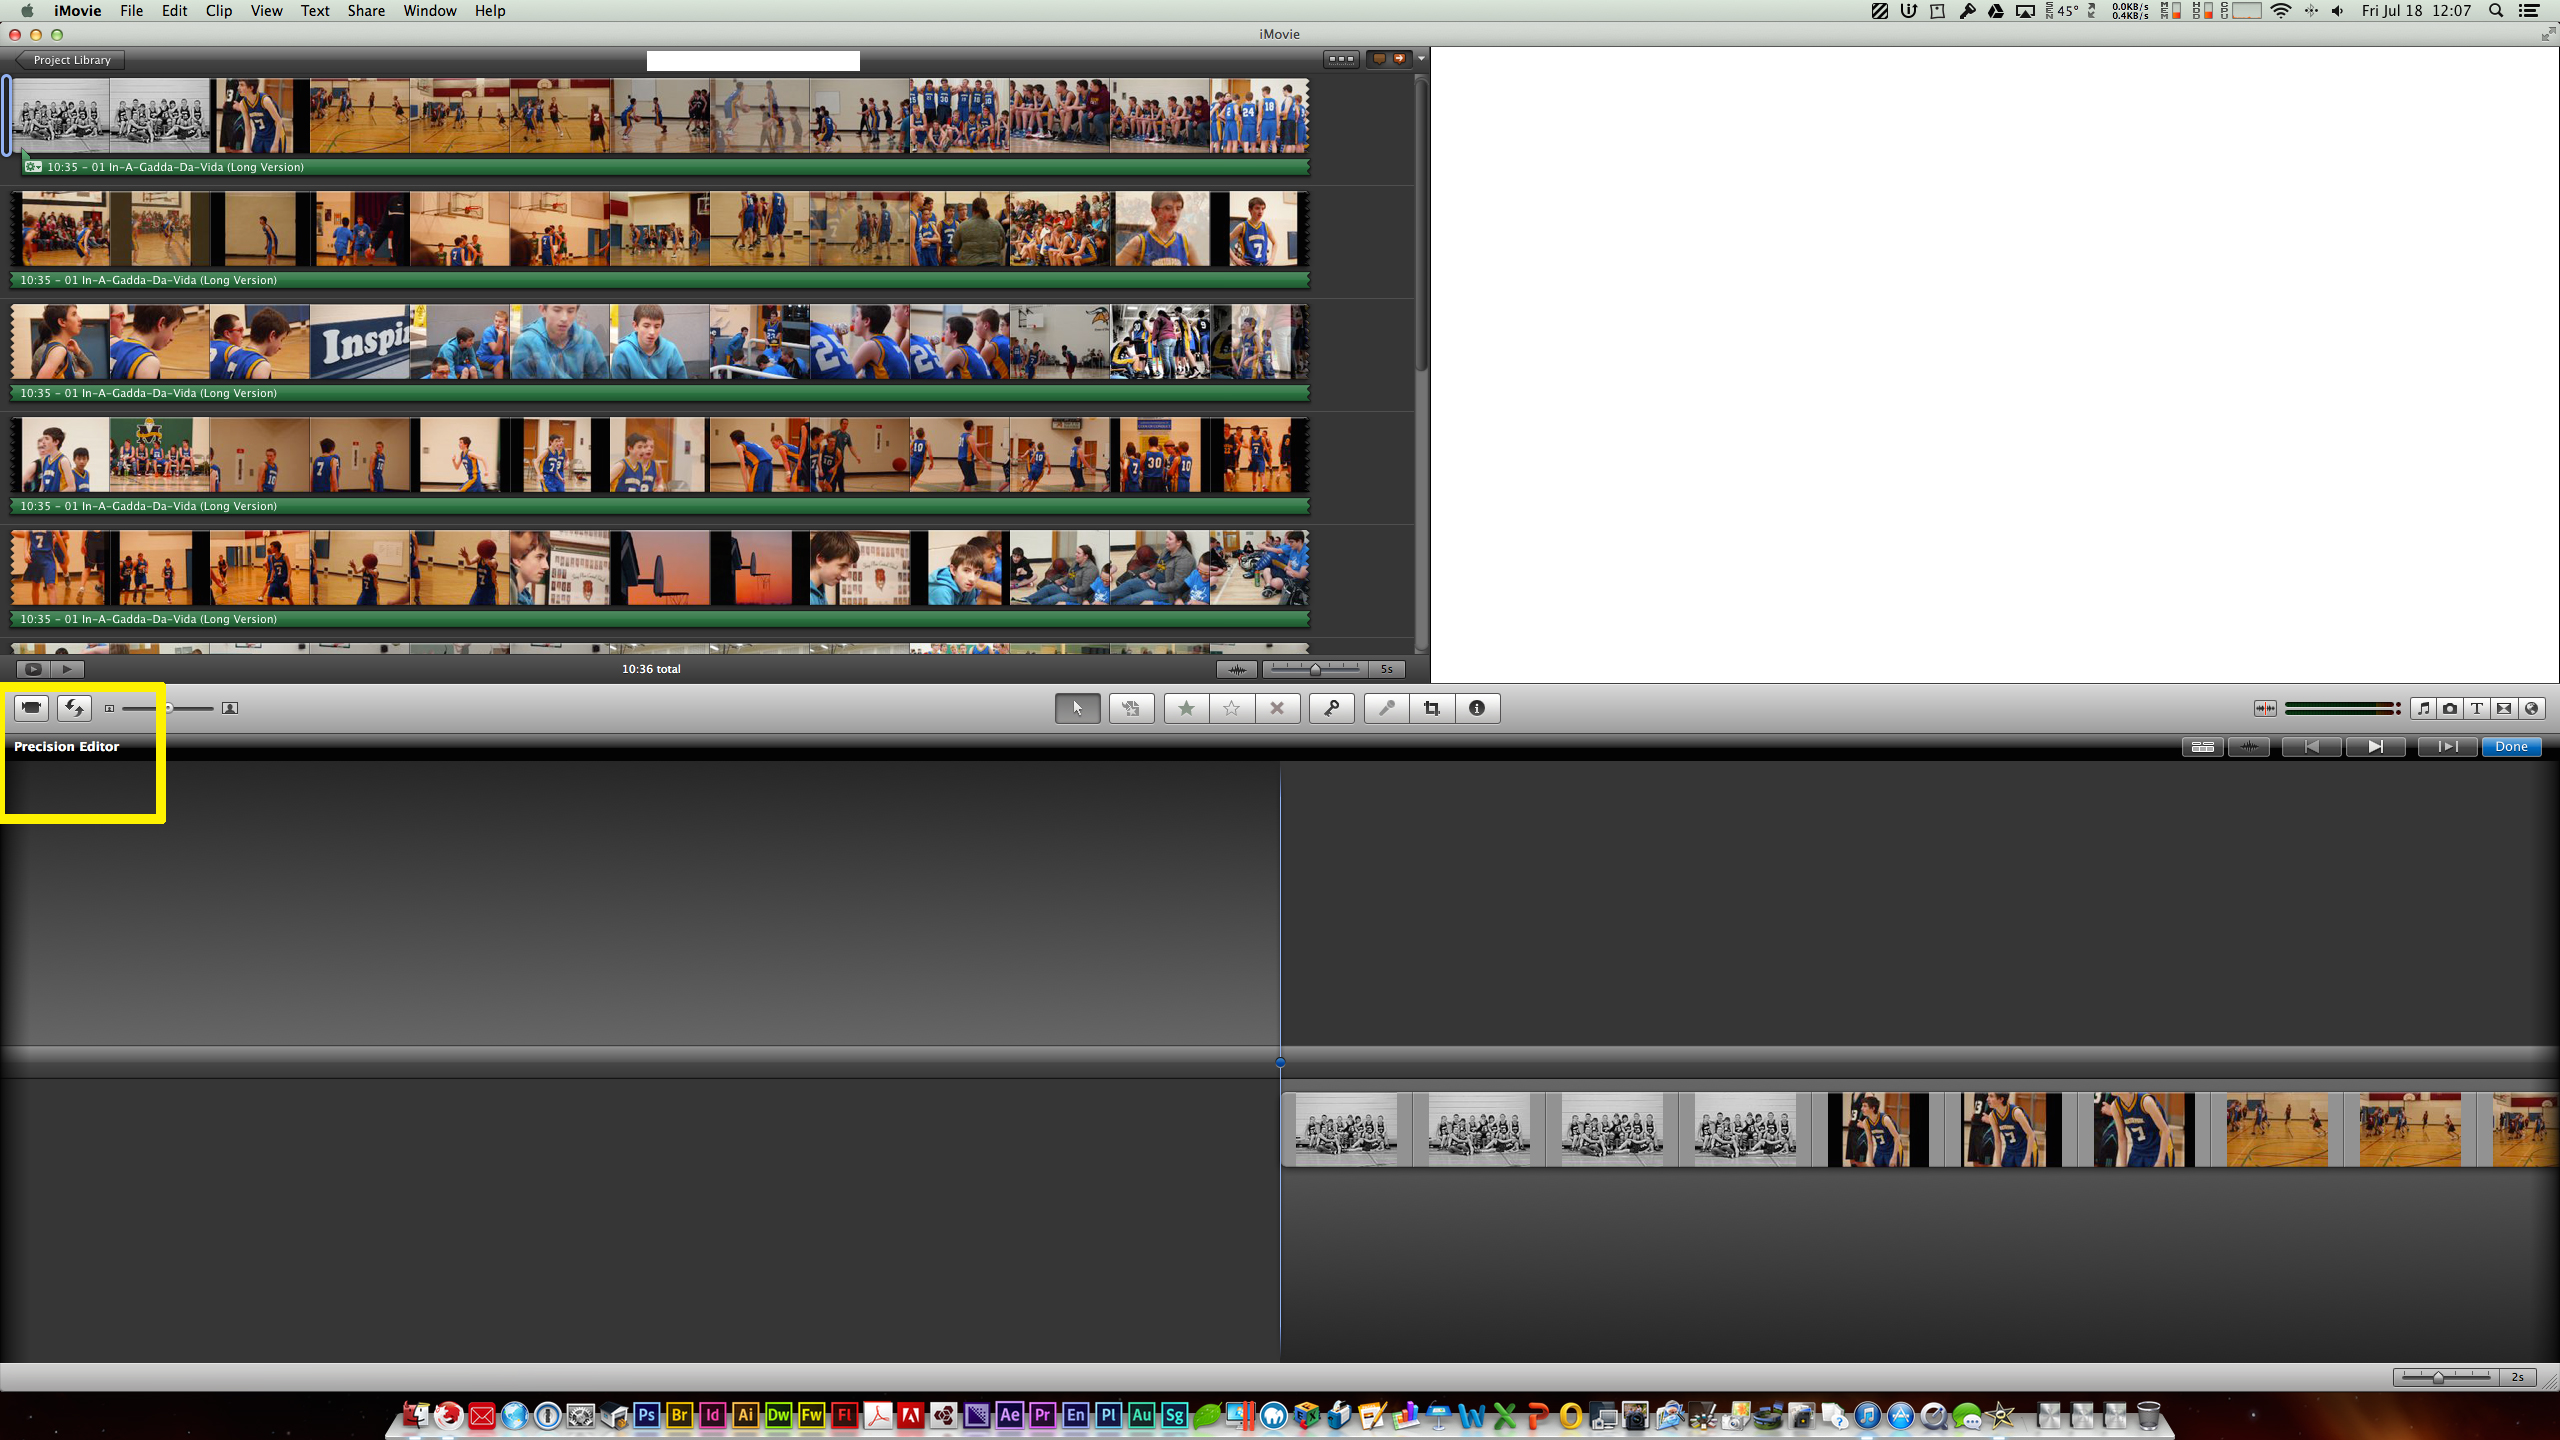 iMovie 11 - Impossible to export a selection / clip